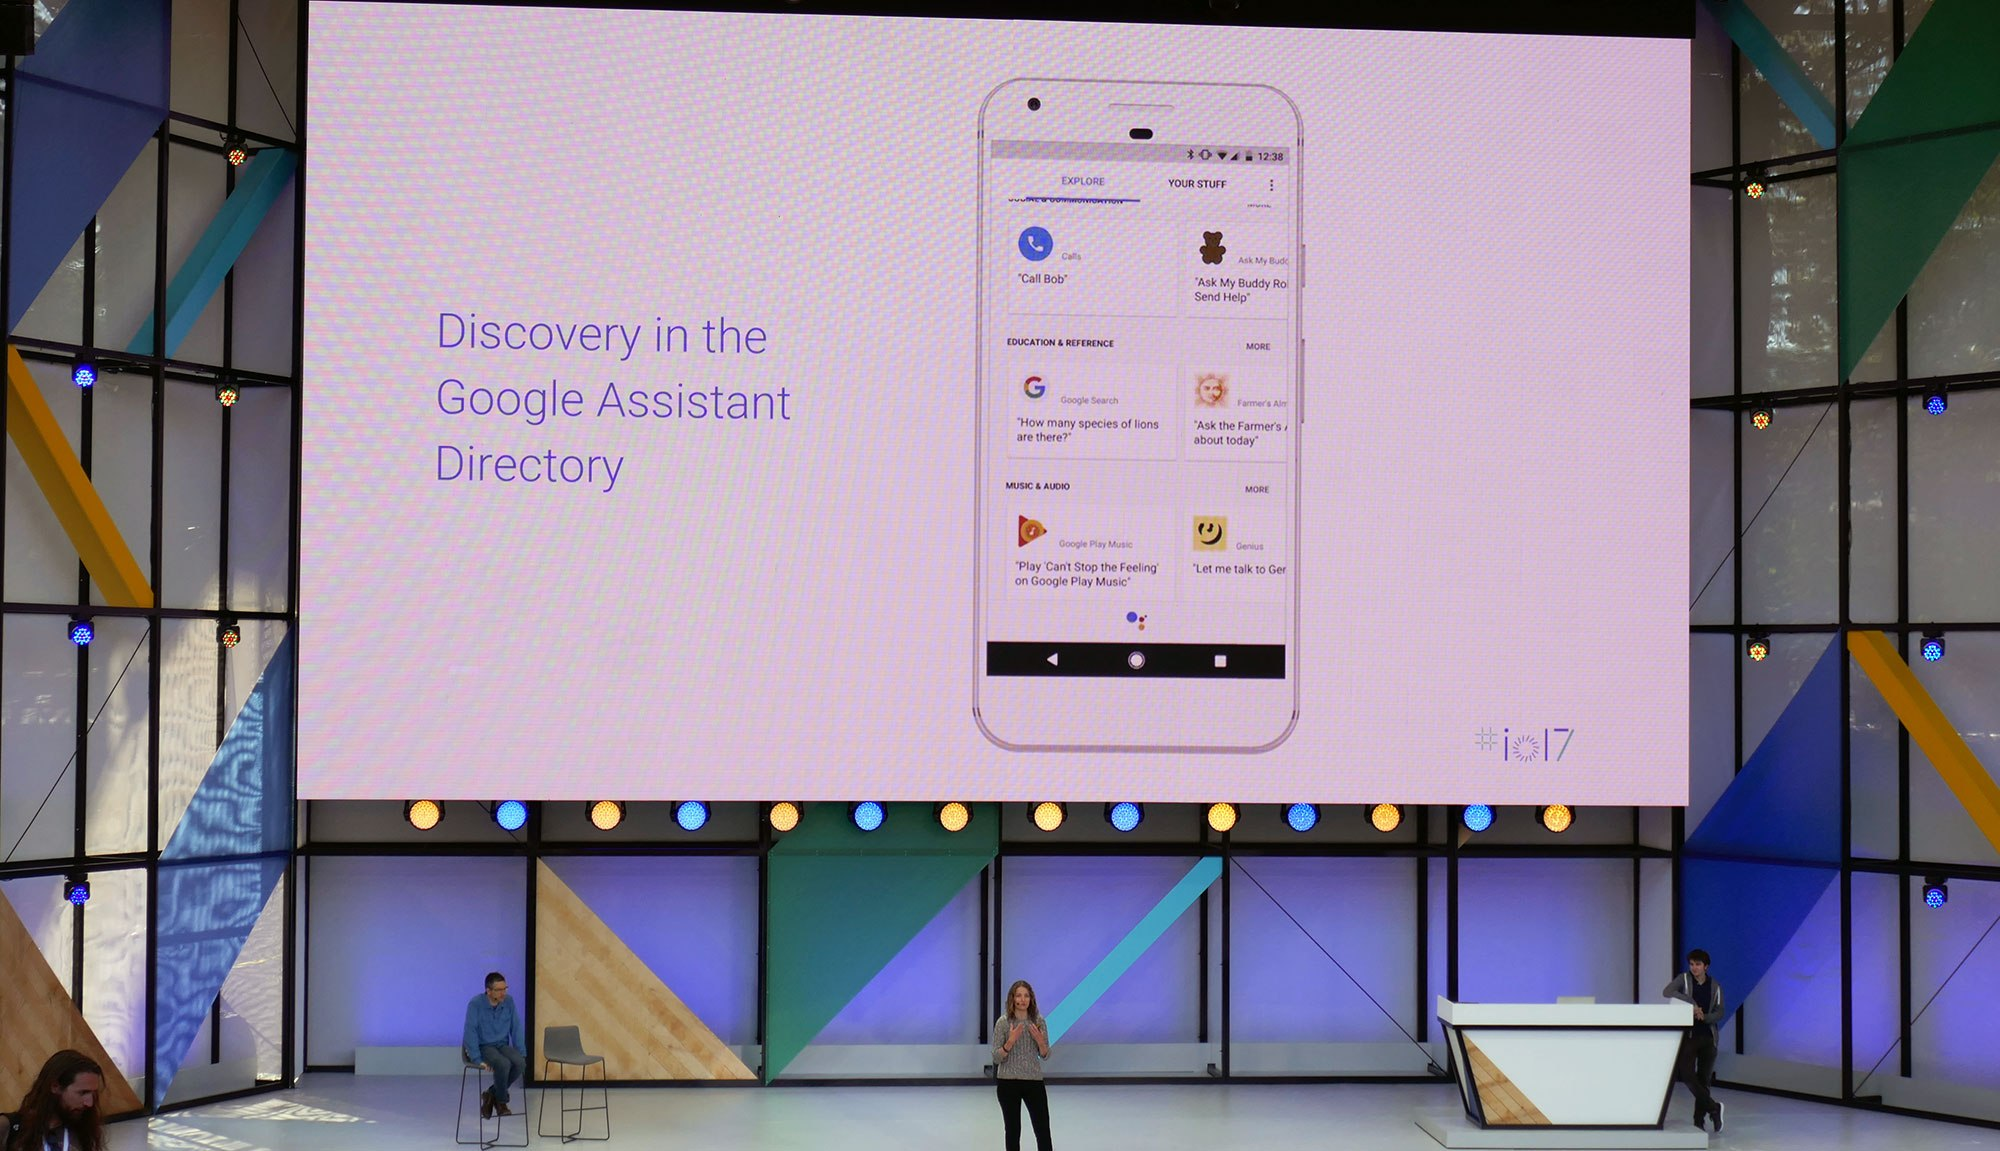 Les applications tierces pour Google Assistant plus simples à trouver